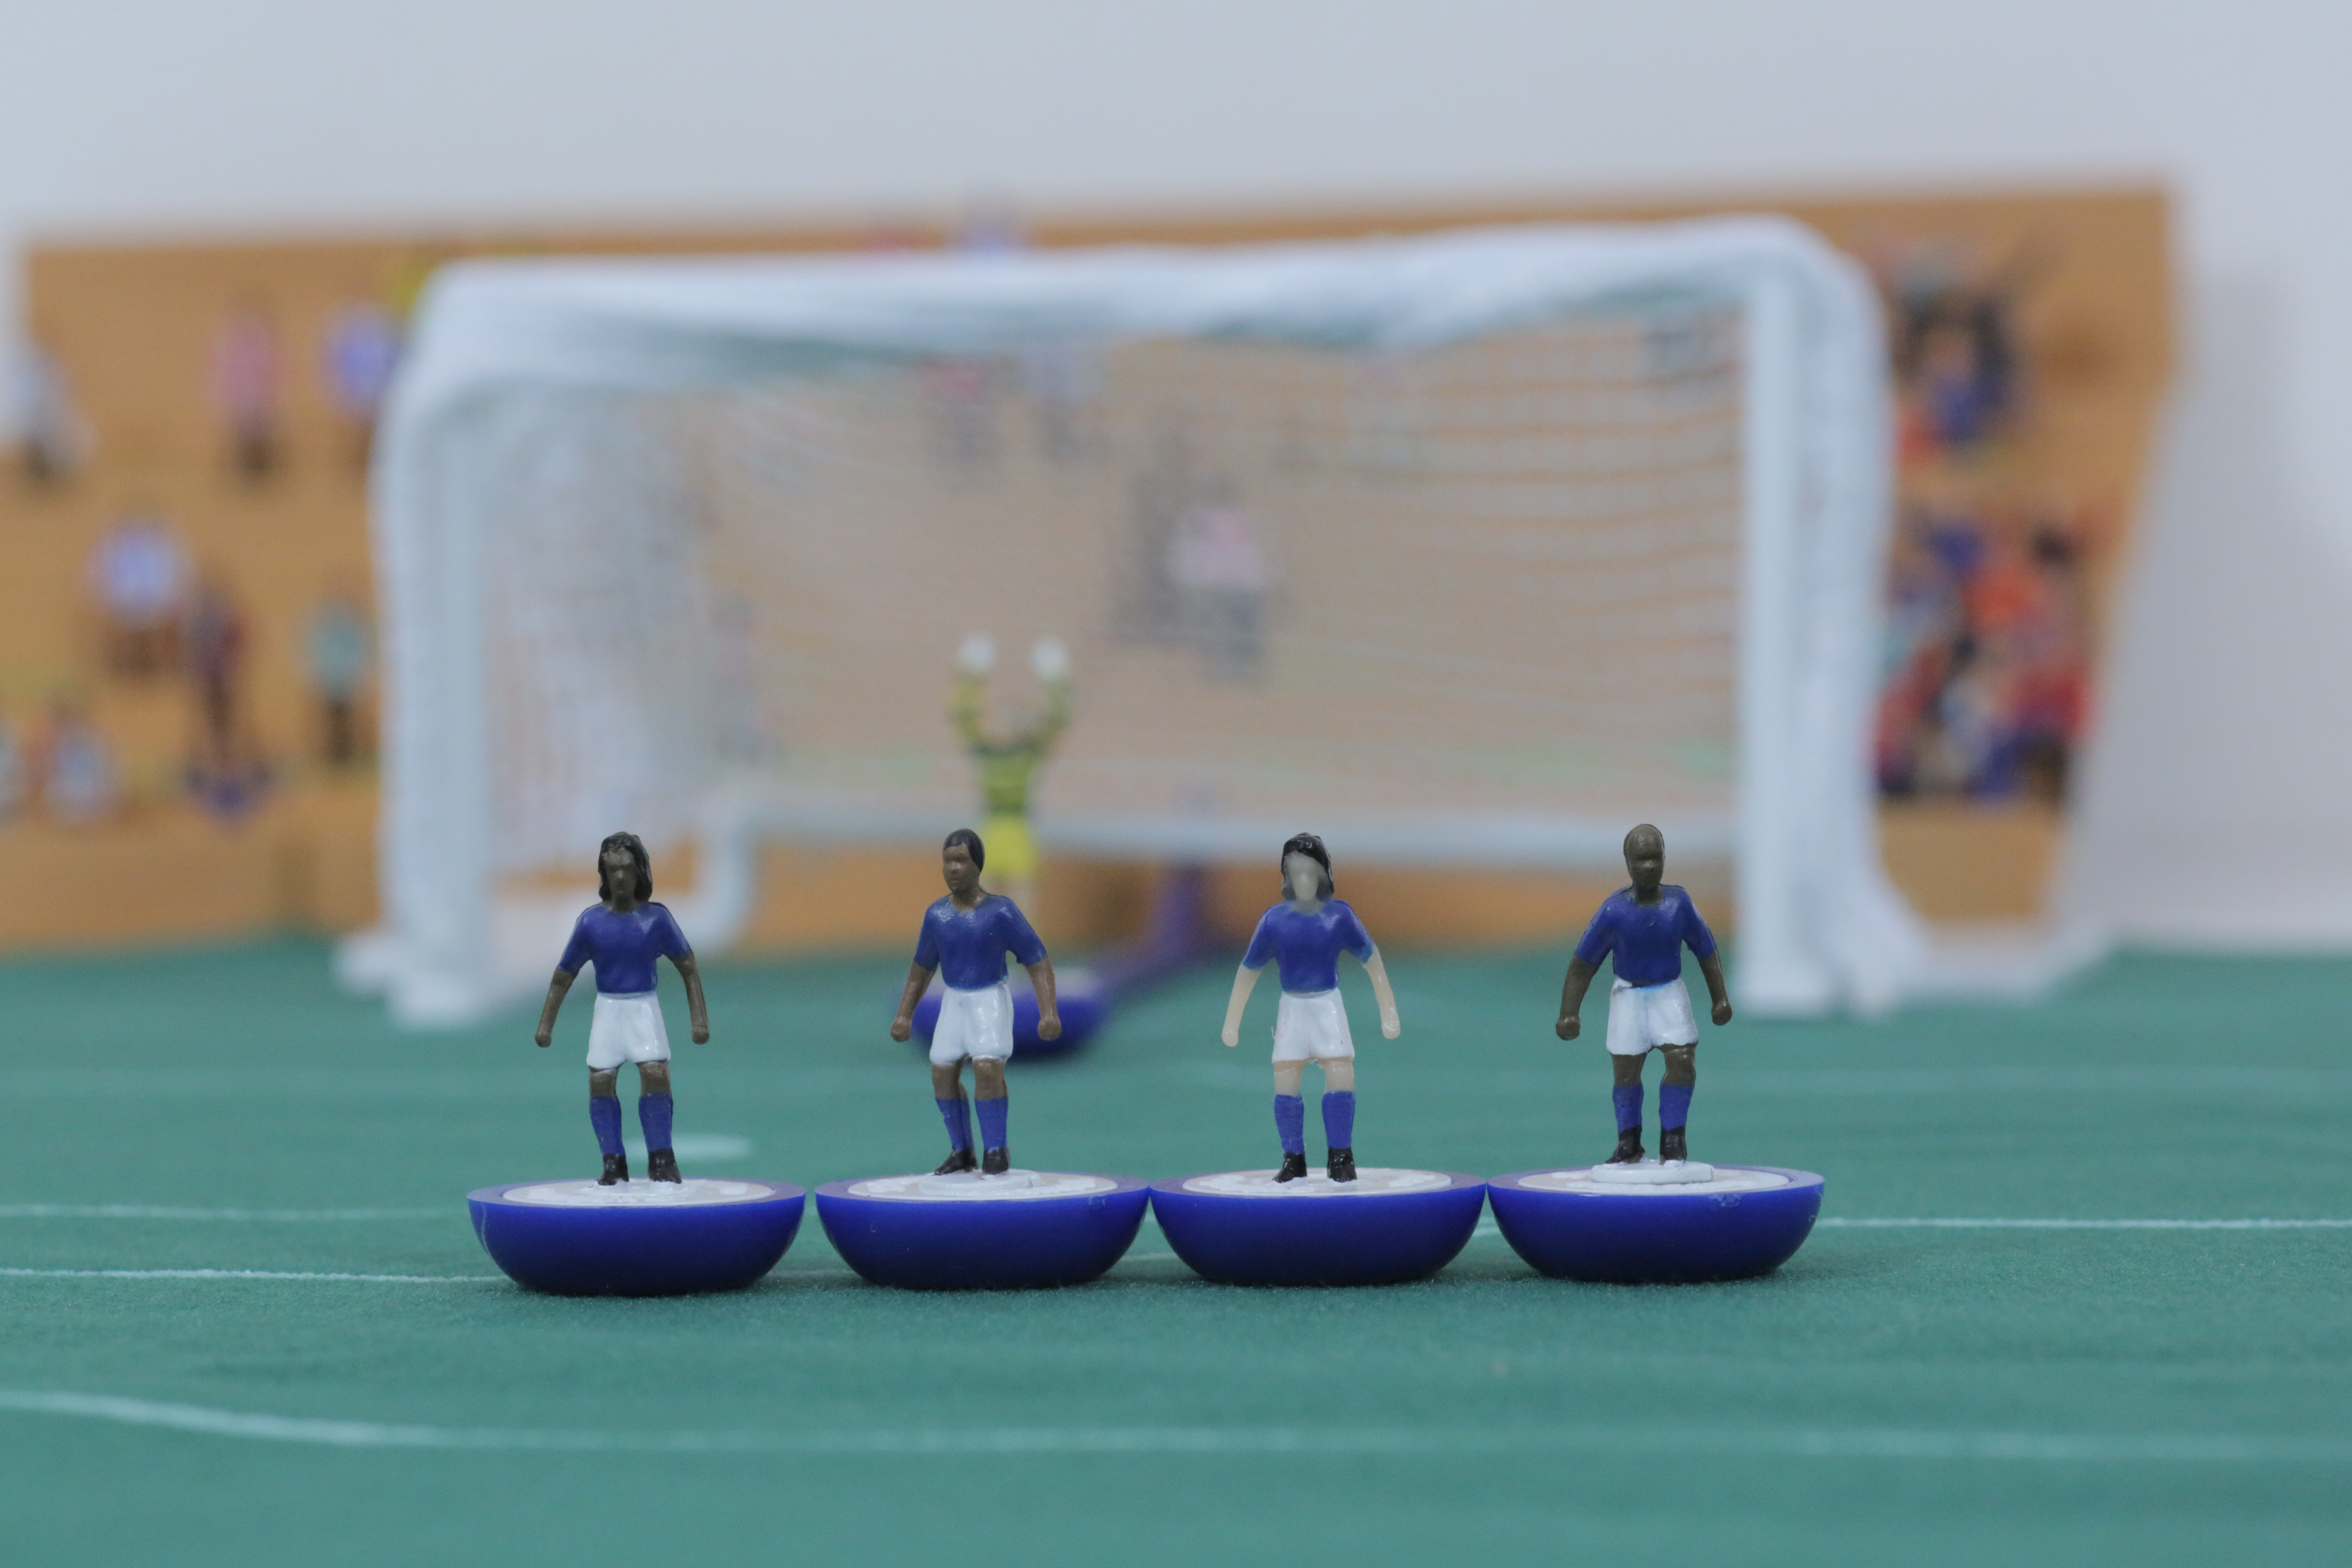 Toy football figures line up to protect their goal.